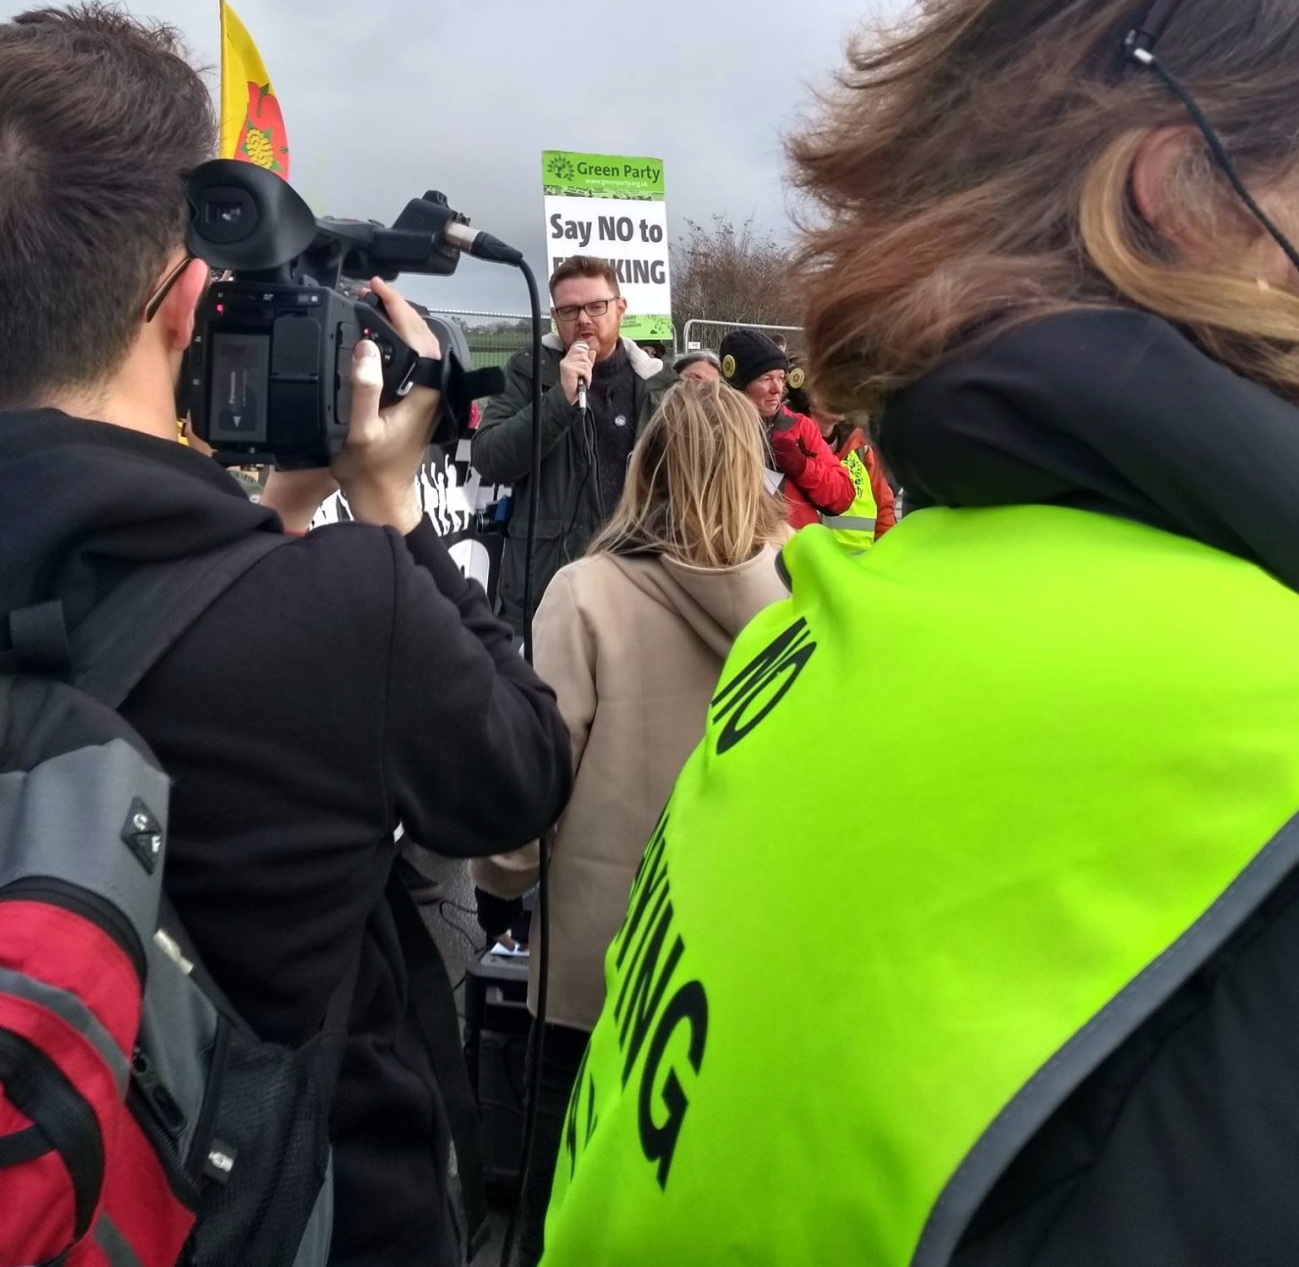 171120 PNR protest report launch Frack Free Lancashire4